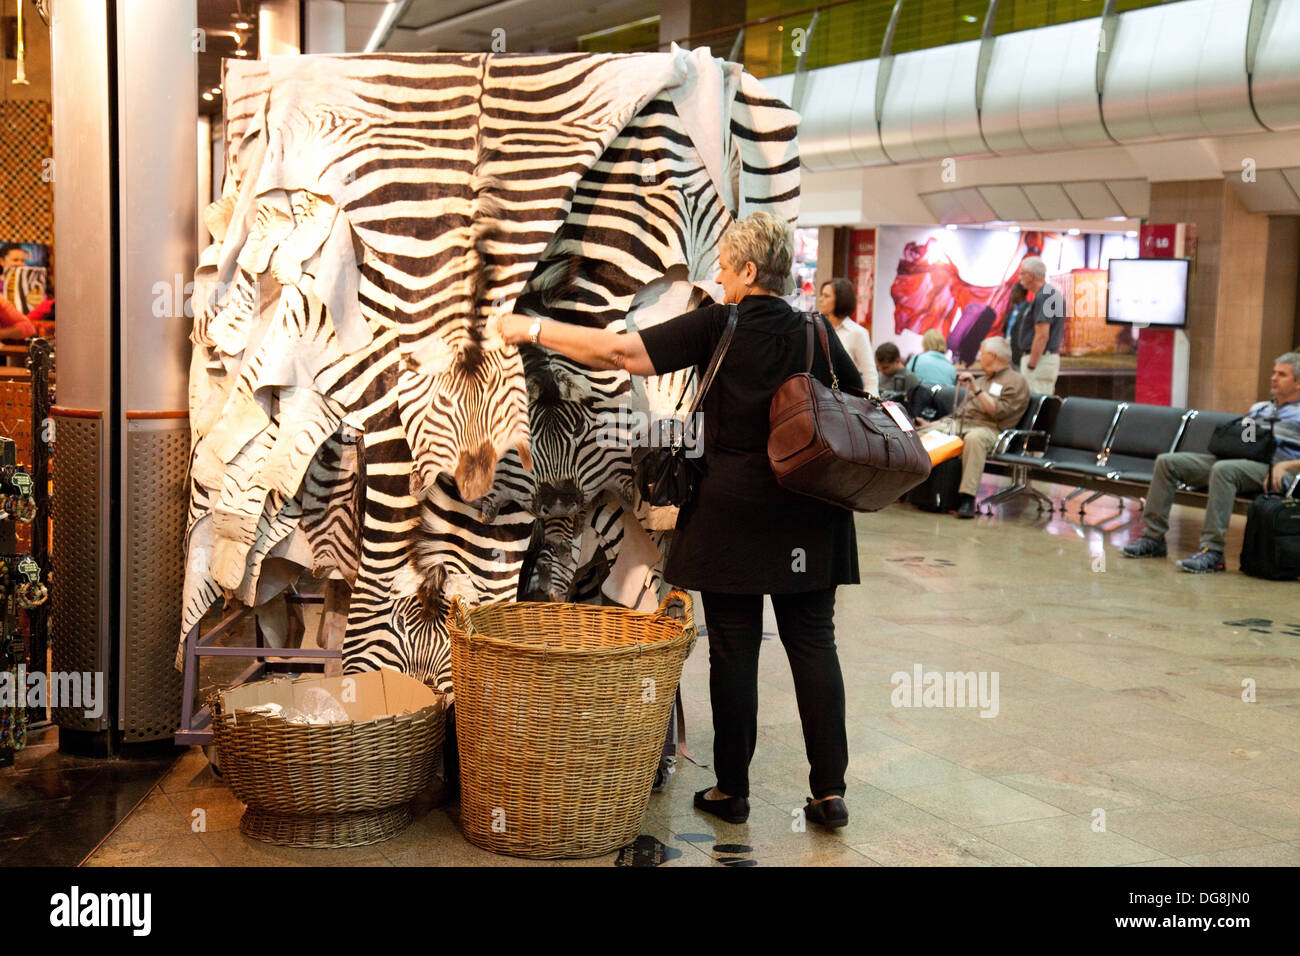 A woman air passenger looking at zebra skins in a gift shop, O. R. Tambo International Airport, Johannesburg airport departures terminal, South Africa - Stock Image